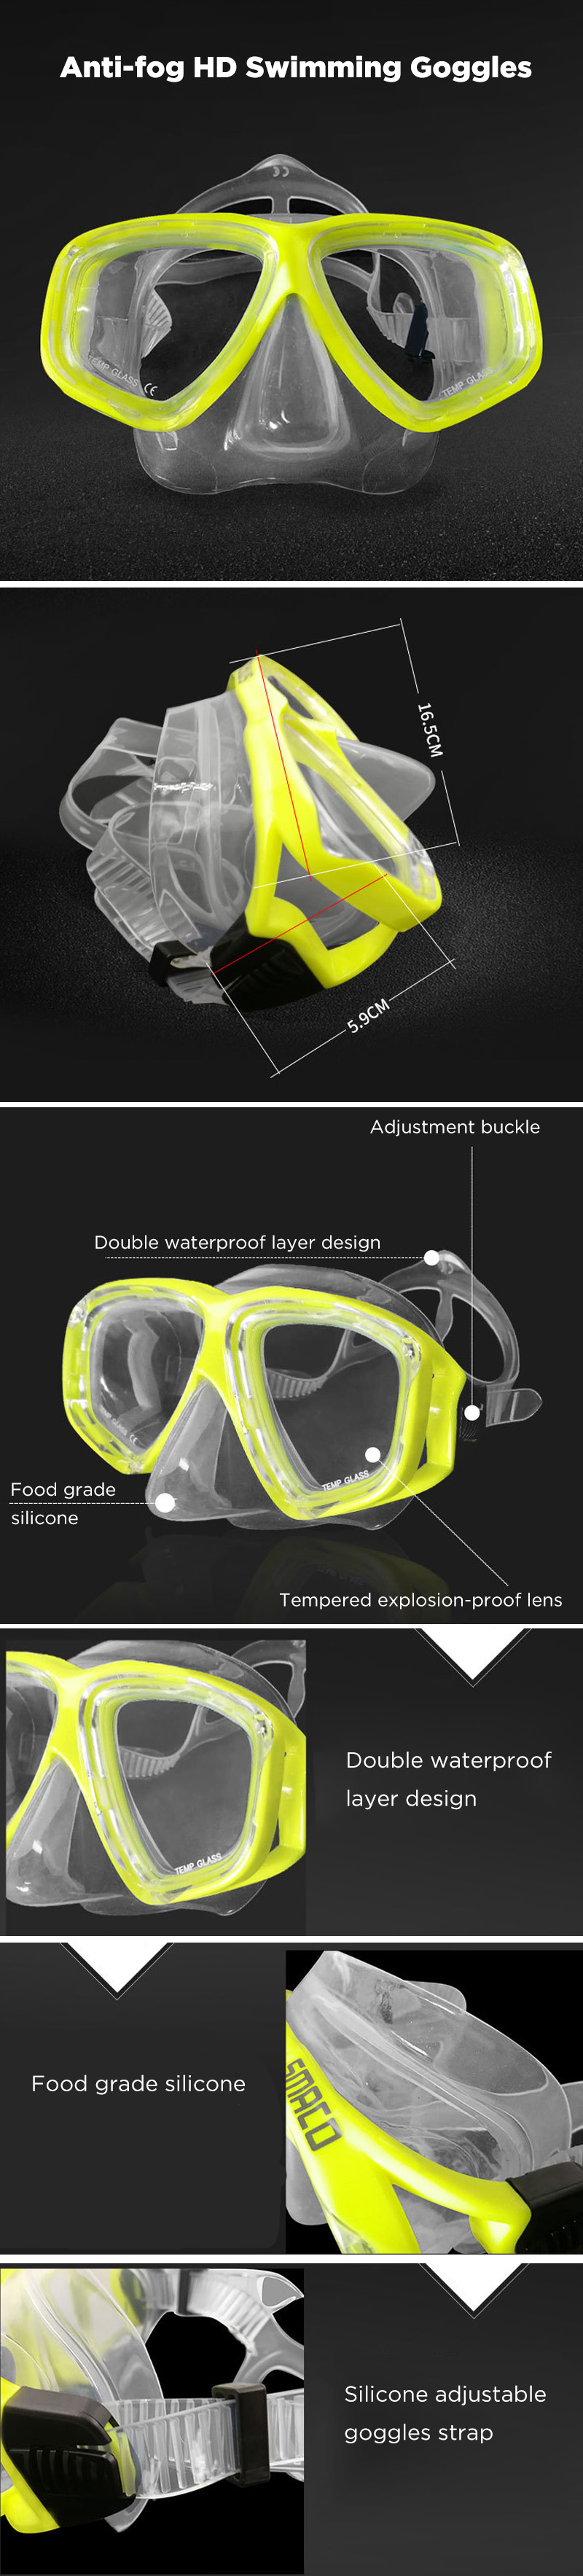 SMACO Swimming Goggles Anti-fog HD Snorkeling Goggles Swimming Water Sport Accessories